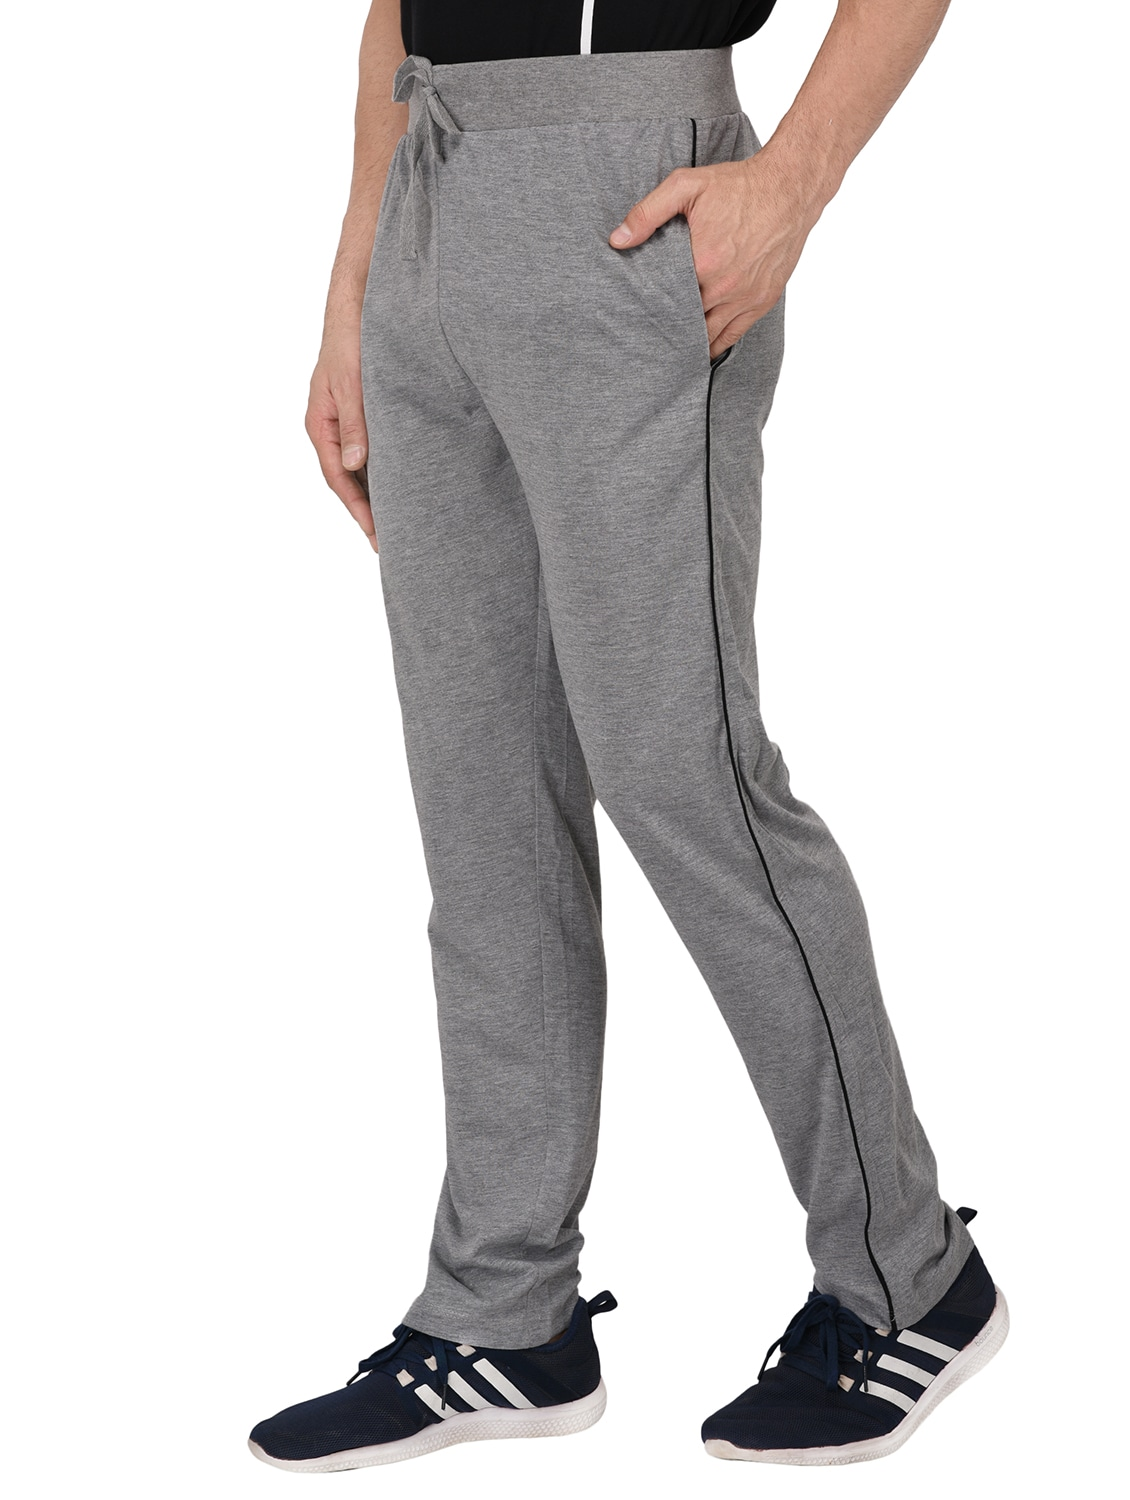 2588dabe72 grey cotton full length track pant